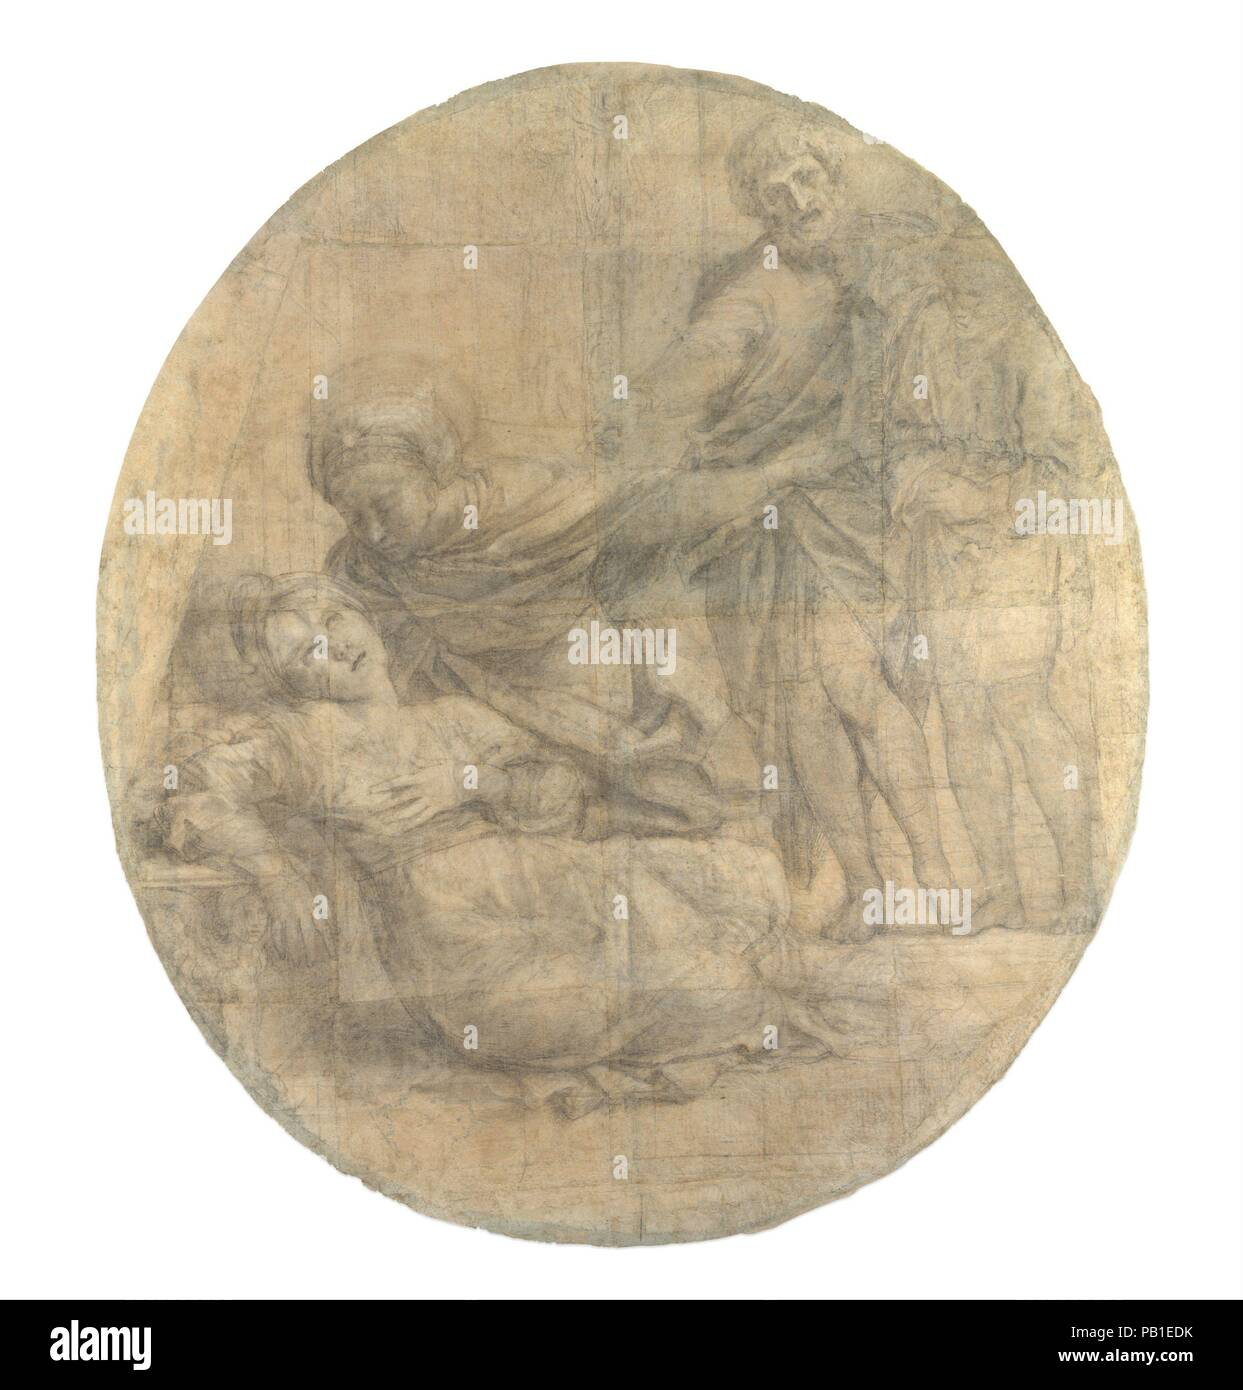 The Martyrdom of Saint Cecilia (Cartoon for a Fresco). Artist: Domenichino (Domenico Zampieri) (Italian, Bologna 1581-1641 Naples). Dimensions: Irregular oval: 67 13/16 × 59 9/16 in. (172.2 × 151.3 cm). Date: 1612-14.  This monumental, exquisitely rendered composition is among the most significant extant cartoons (full-scale drawings) by Domenichino.  It was a preparatory design for the central portion of his fresco of the Martyrdom of Saint Cecilia, painted on the left wall of the Polet chapel at San Luigi dei Francesi, the French church of Rome.    Domenichino received the contract for the f - Stock Image